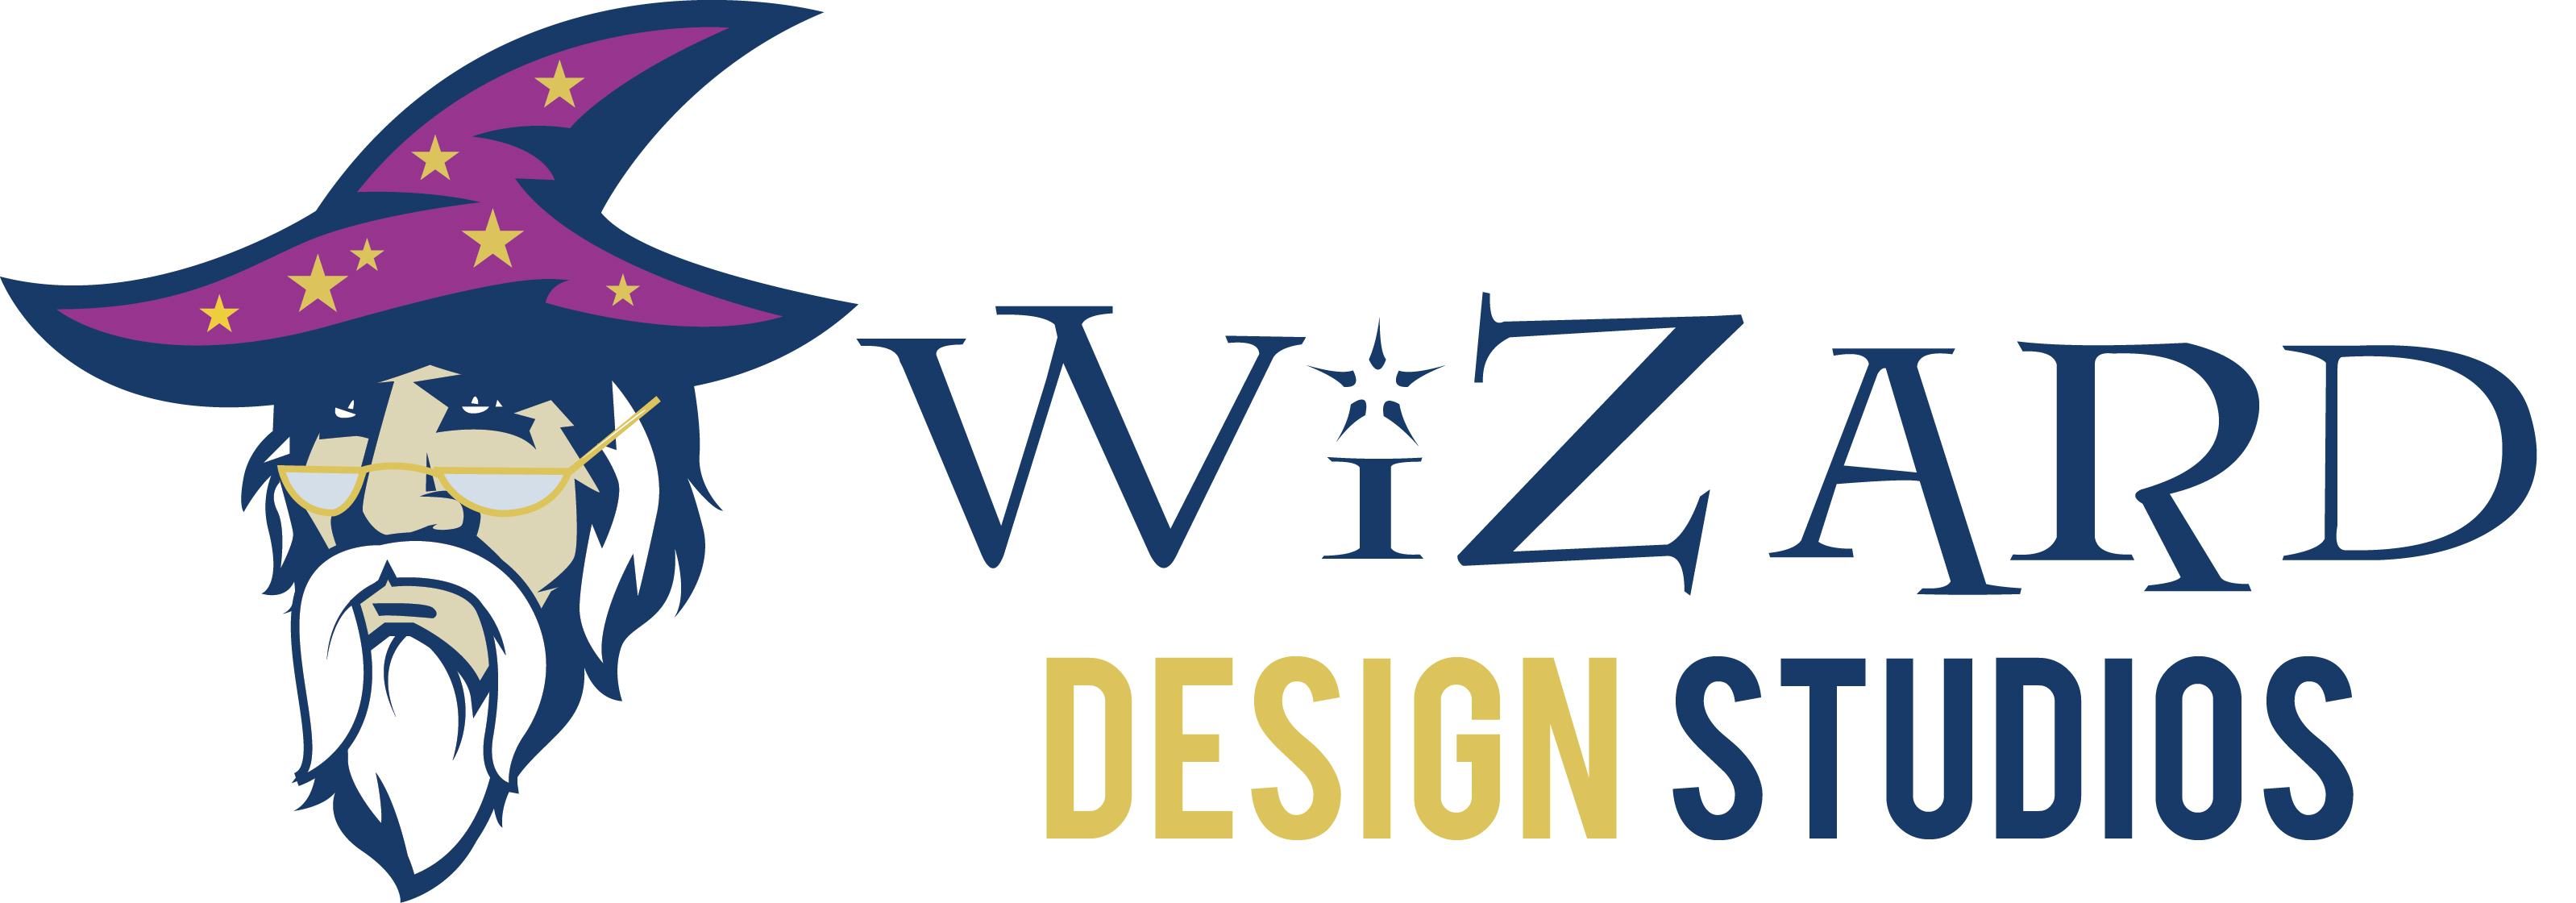 Wizard Design Studios